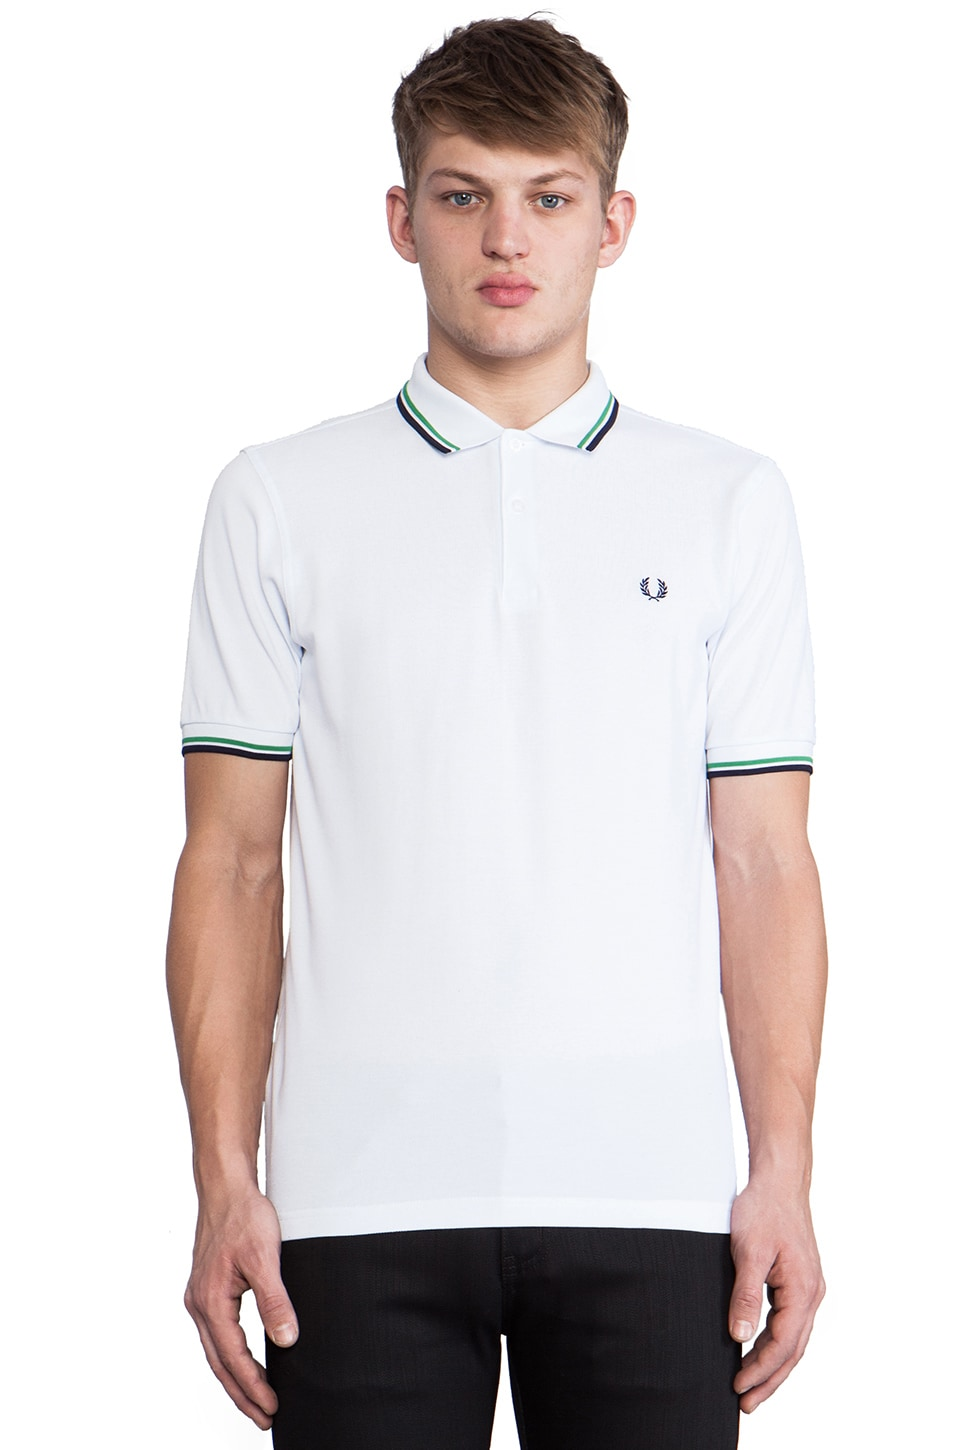 Fred Perry Twin Tipped Fred Perry Shirt in White & Island Green & Dark Dark Carbon